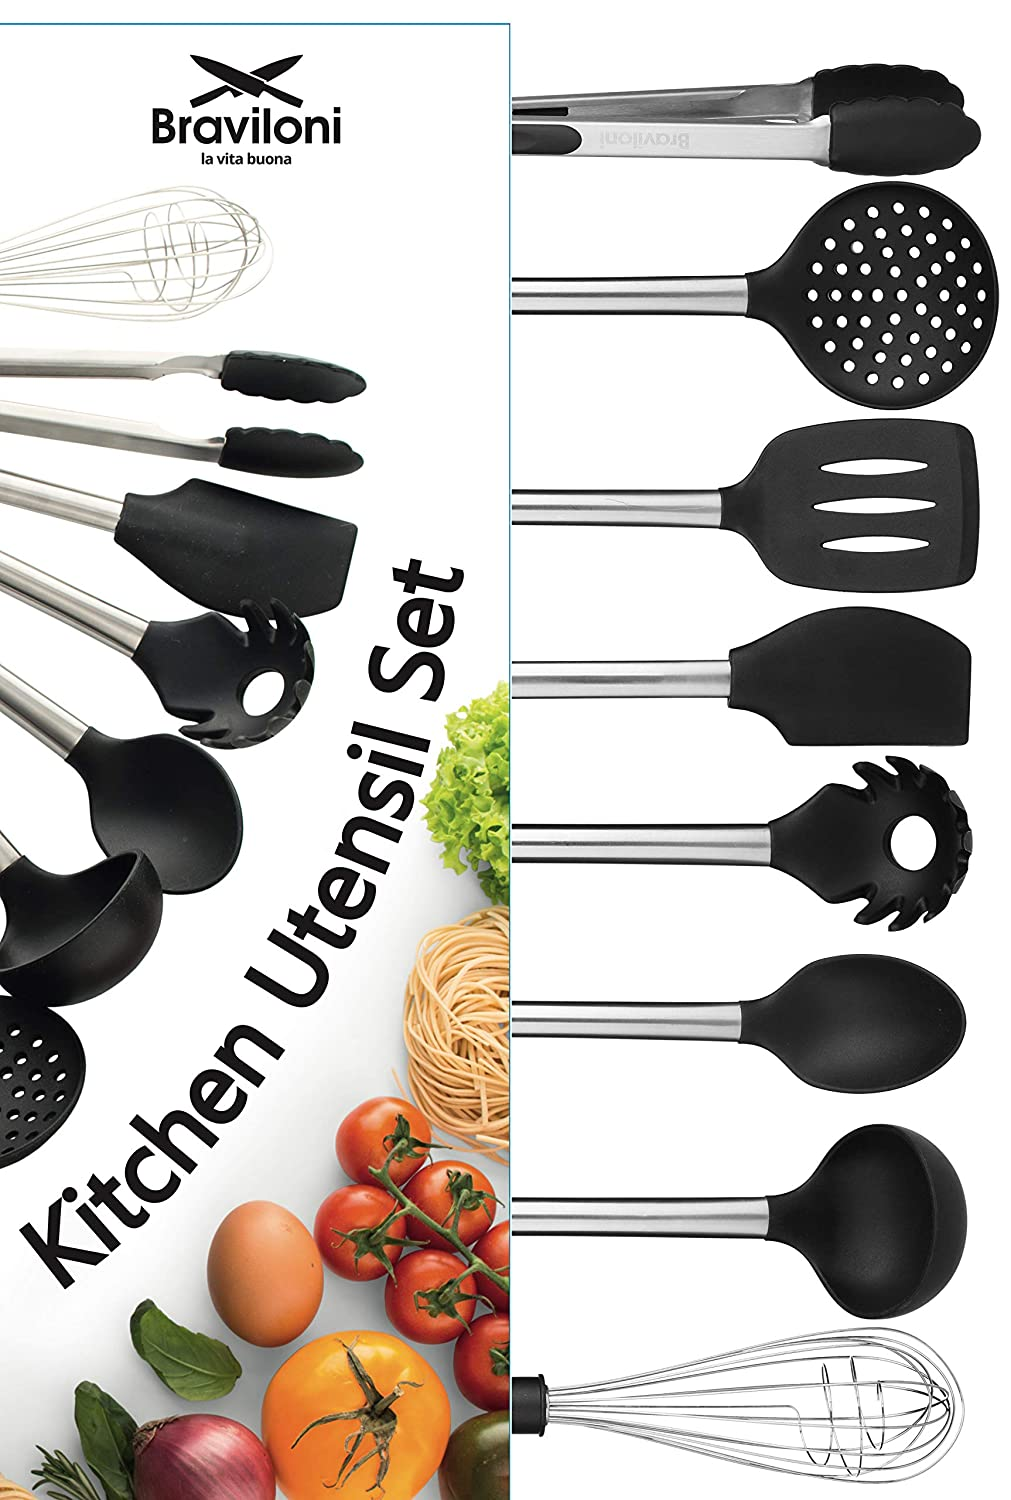 Kitchen Utensil Set - 8 Best Kitchen Utensils - Nonstick Cooking Spatulas - Silicone & Stainless Steel Kit - For Pots & Pans - Serving Tongs, Spoon, Spatula Tools, Pasta Server, Ladle, Strainer, Whisk Braviloni